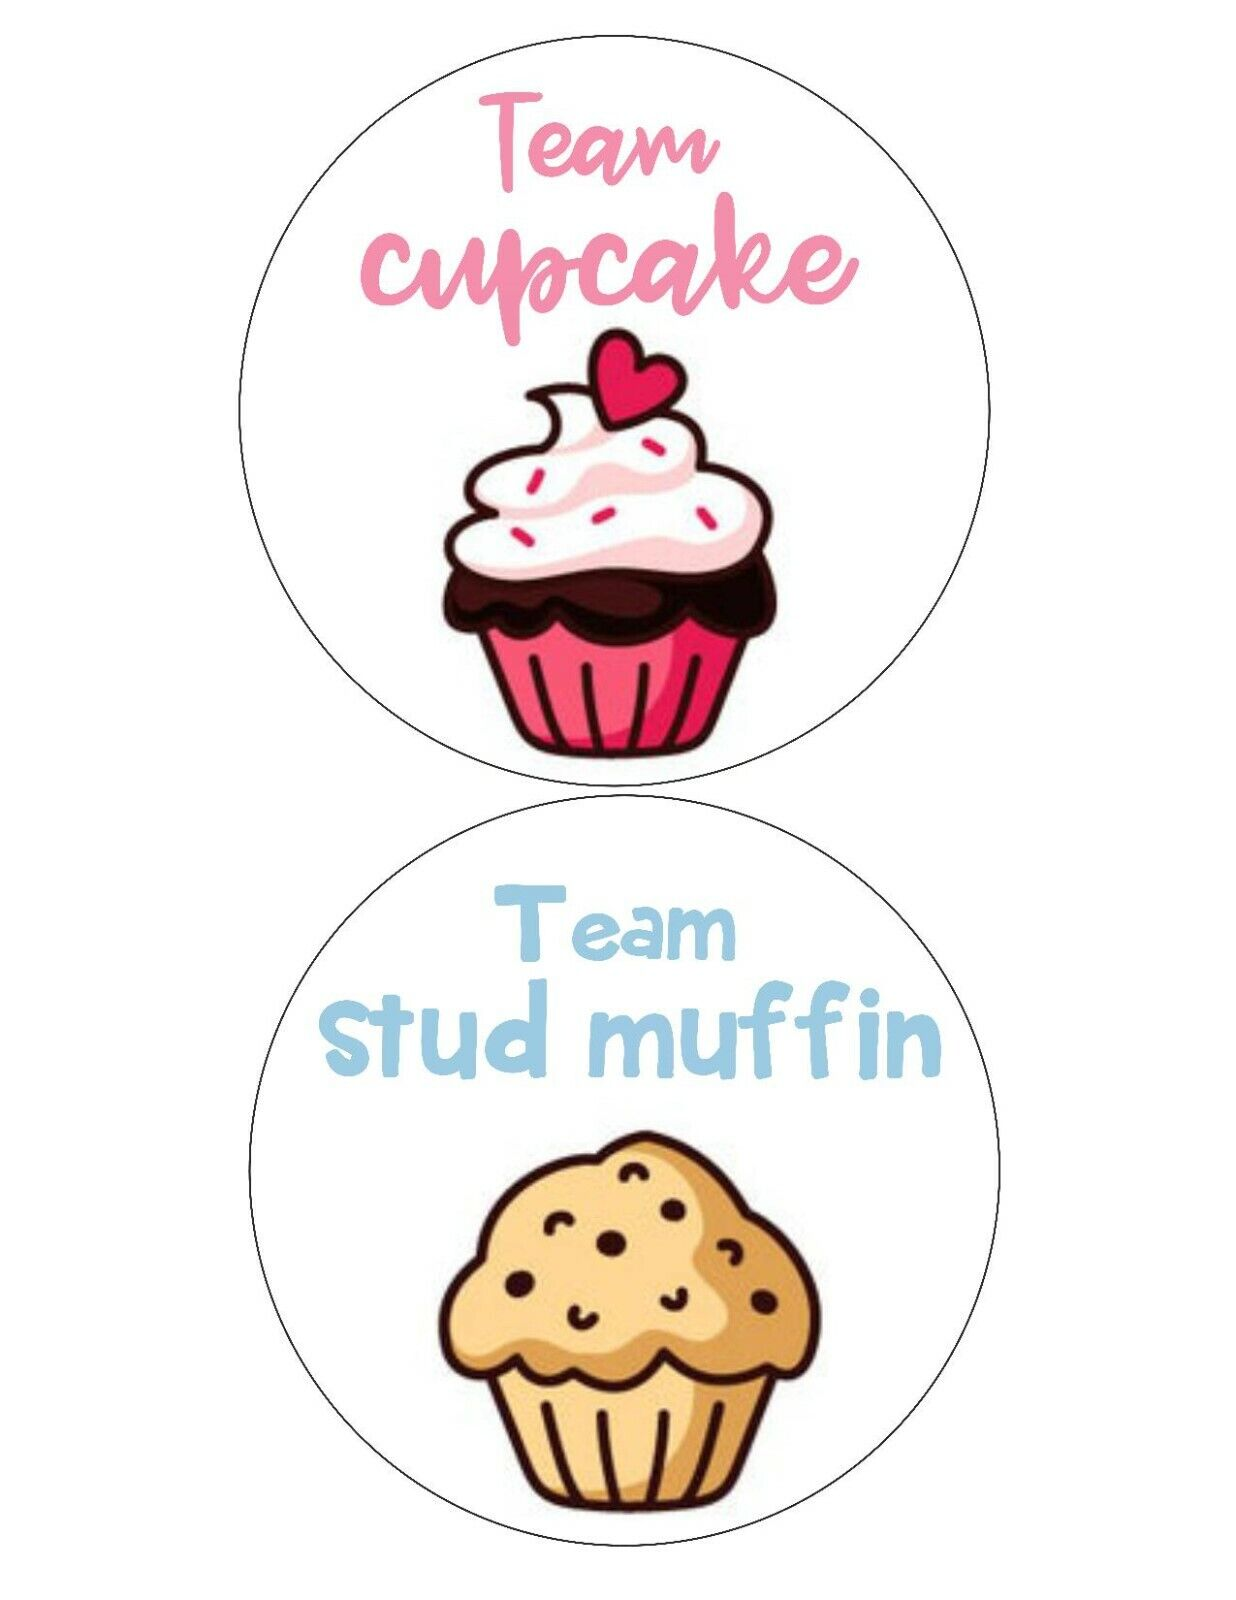 Gender Reveal party stickers- Team Cupcake or Stud muffin, b